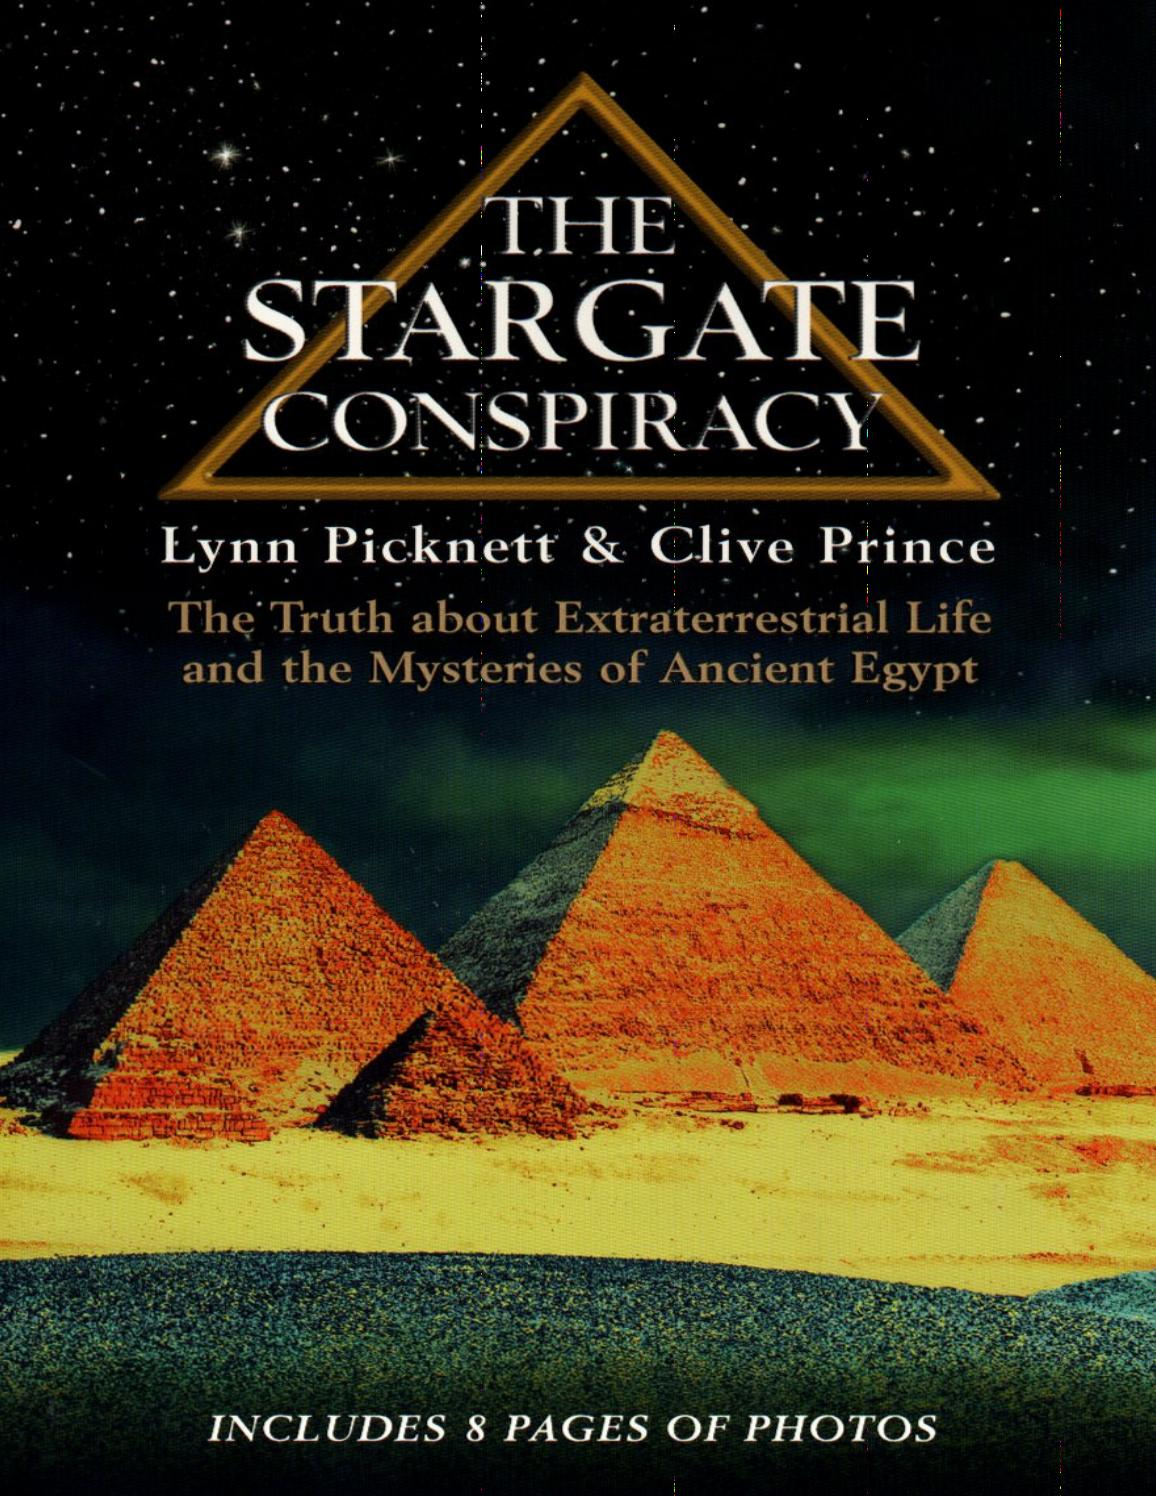 The stargate conspiracy%2c the truth about extraterrestrial life and the  mysteries of ancient egypt by resivzi - issuu